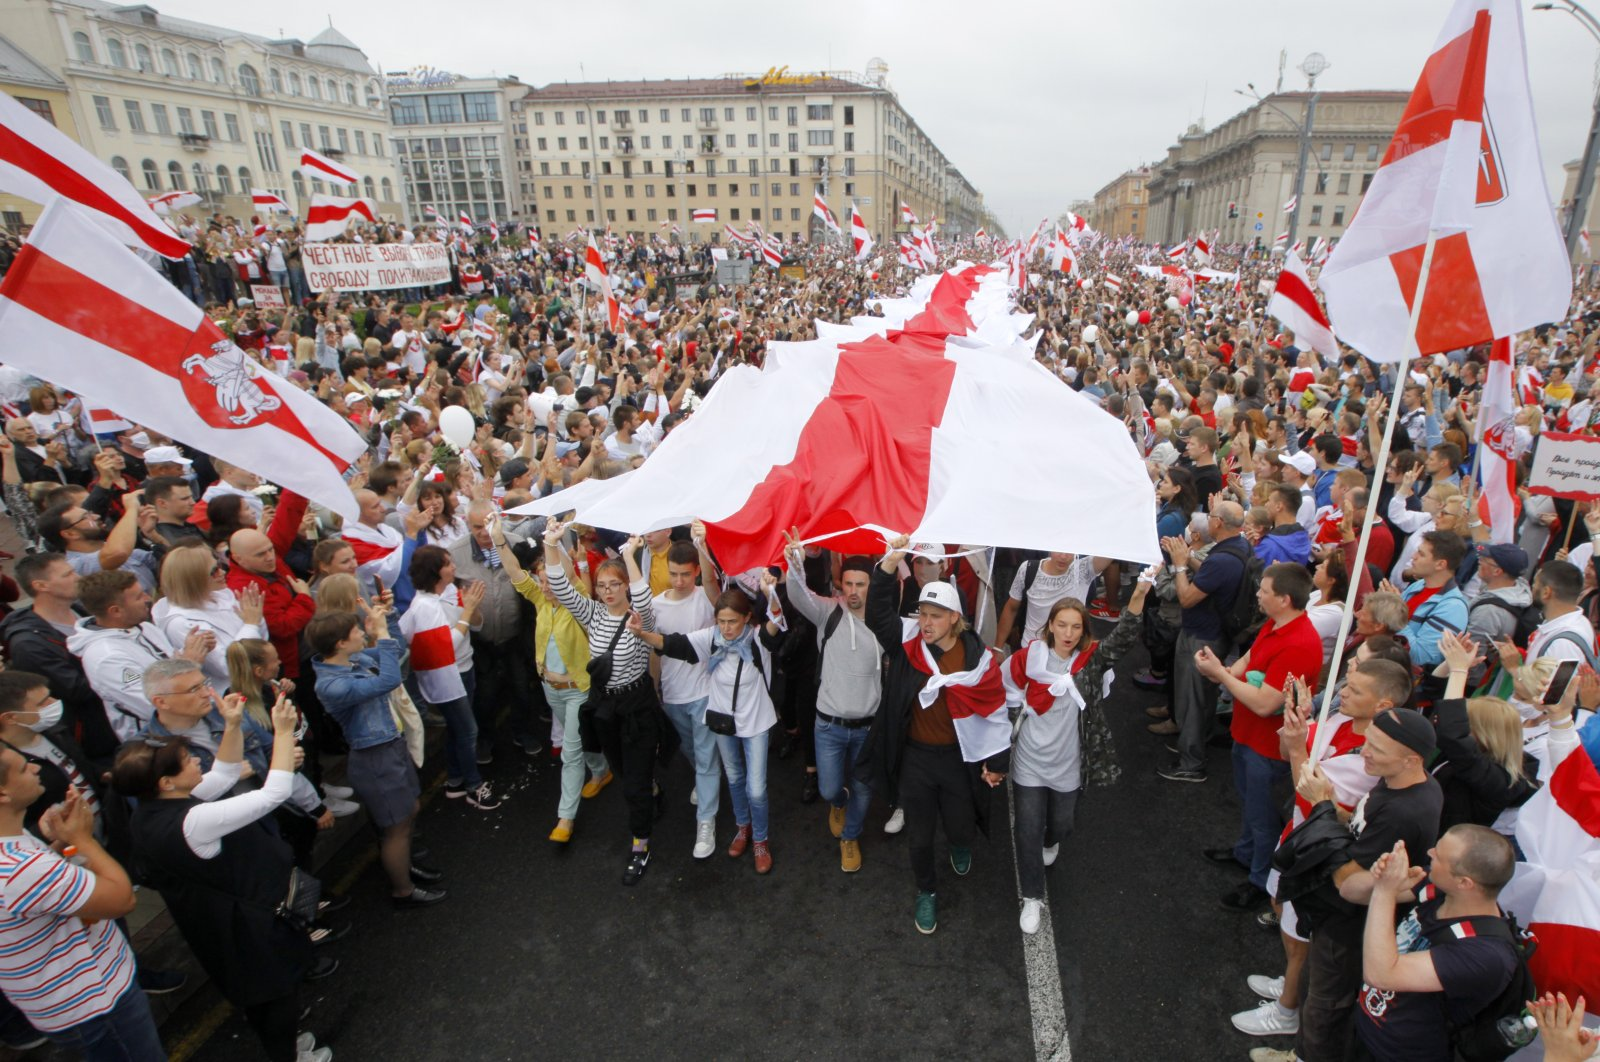 Demonstrators carry a huge historical flag of Belarus as thousands gather for a protest at the Independence Square in Minsk, Belarus, Aug. 23, 2020. (AP Photo)